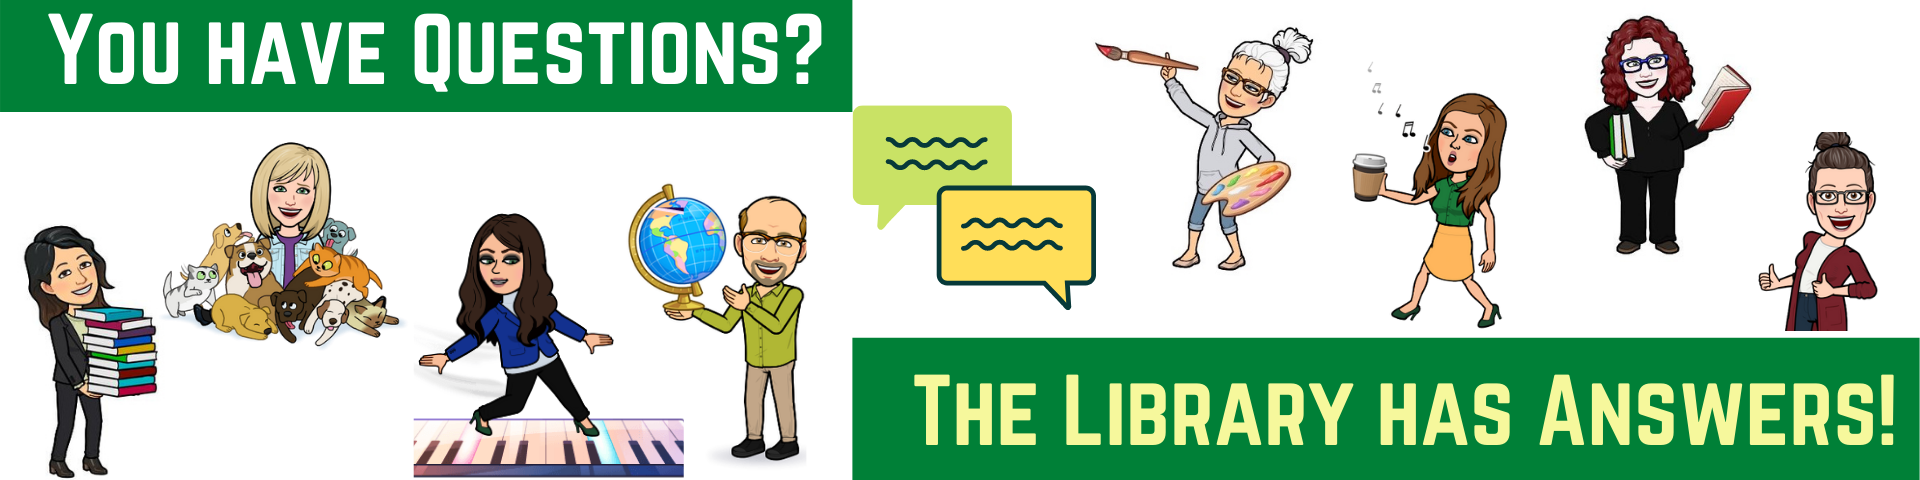 You have questions? The Library has answers!